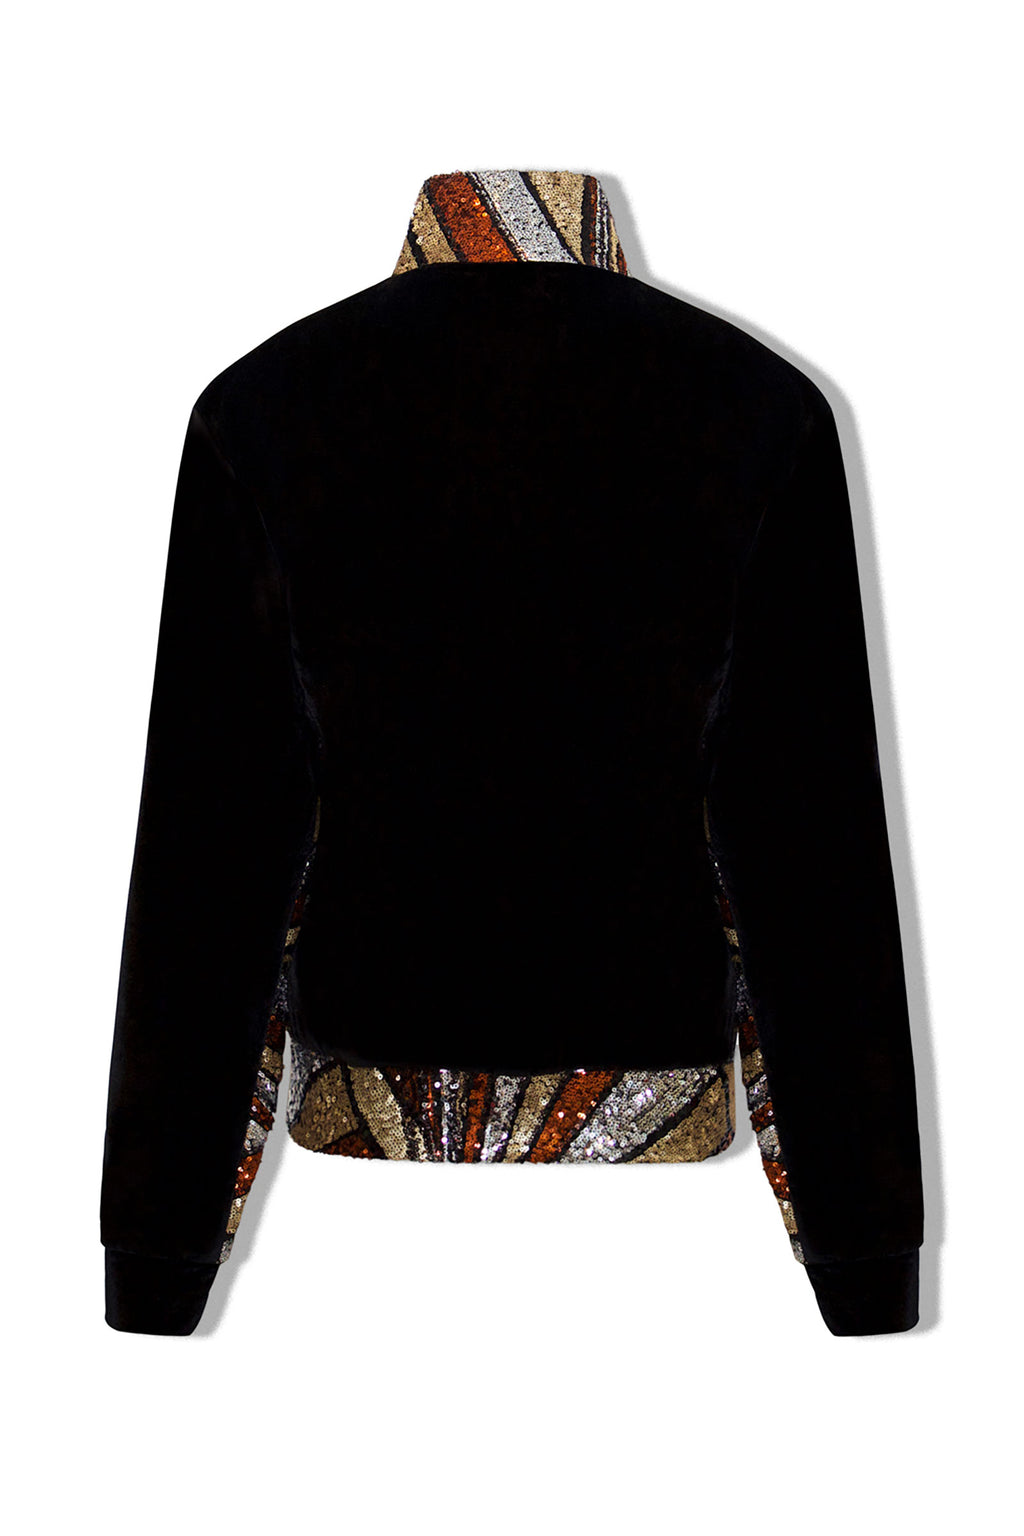 Ilona Rich Bronze Velvet Sequin Detail Long Jacket